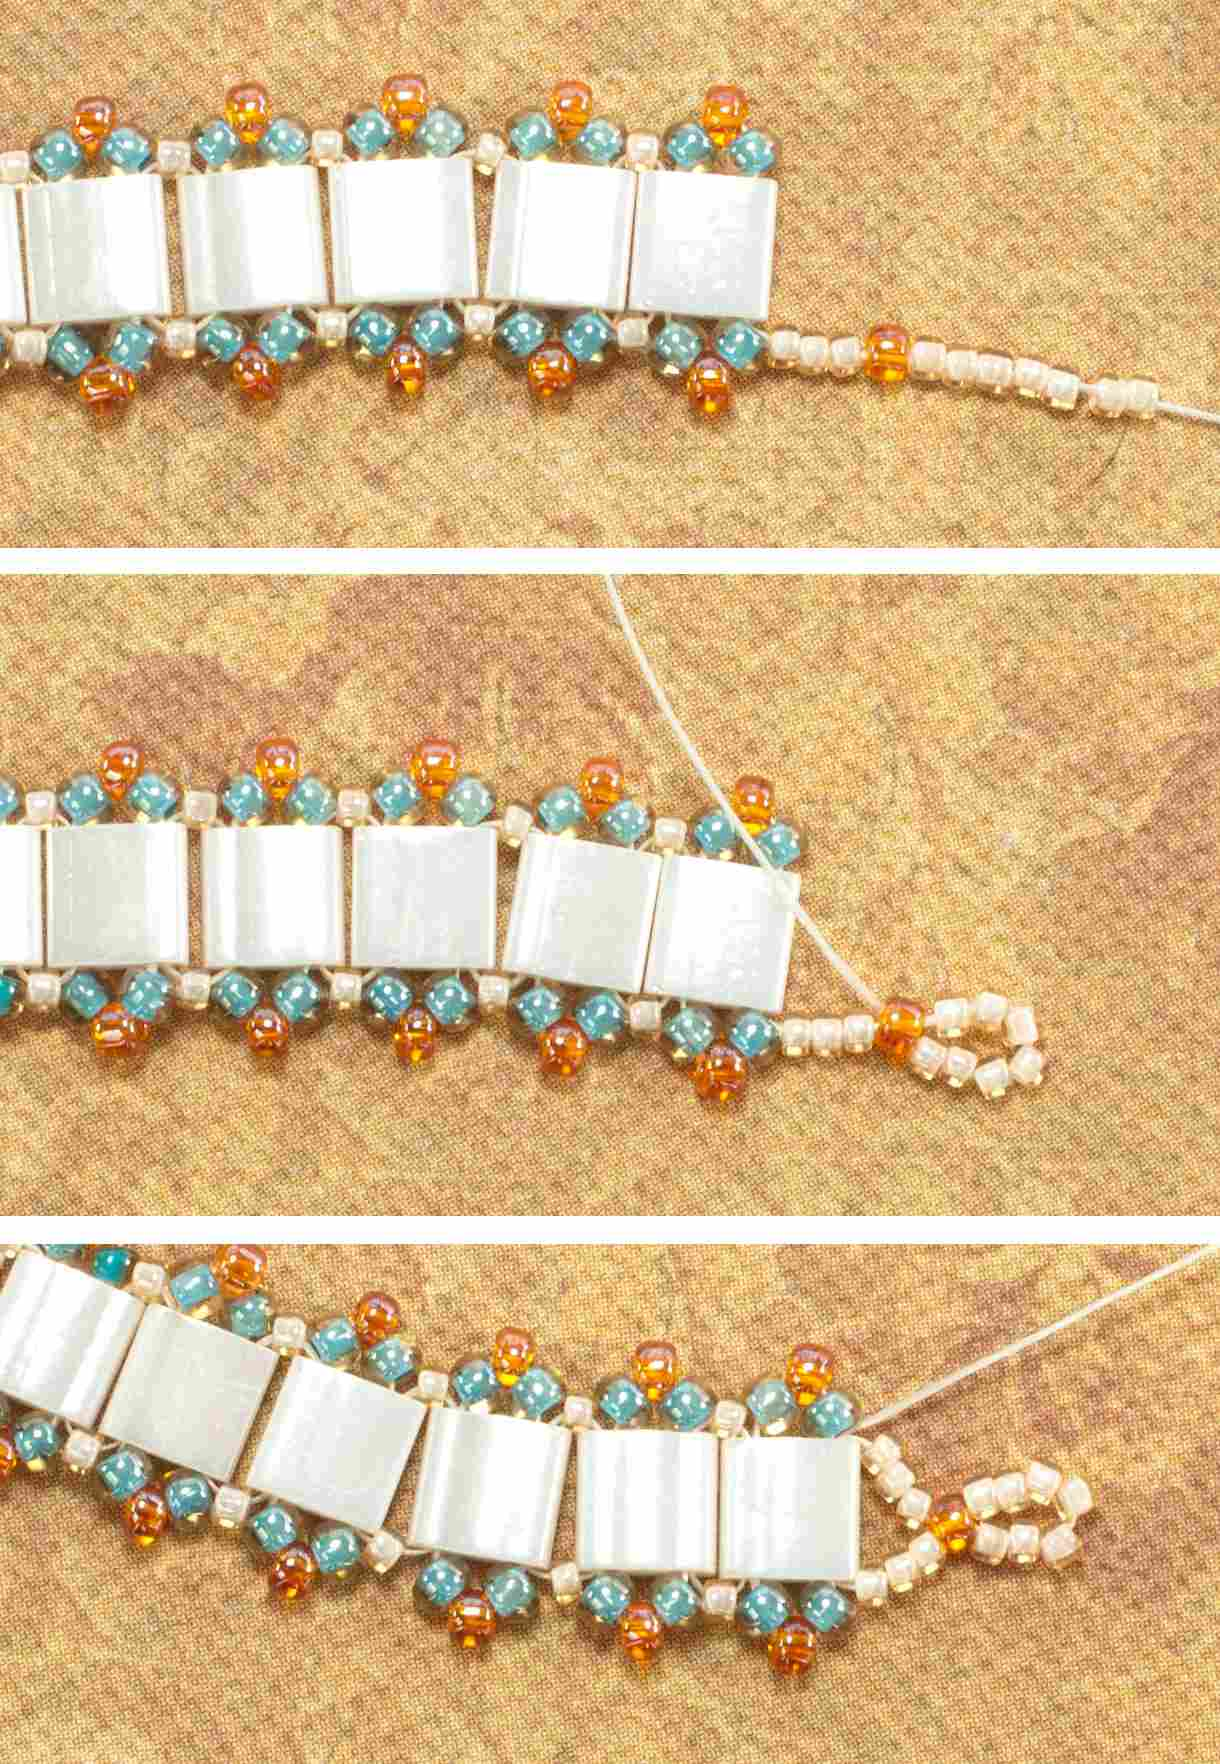 tila bead bracelet stitch pattern beads michaels beginner easy ladder